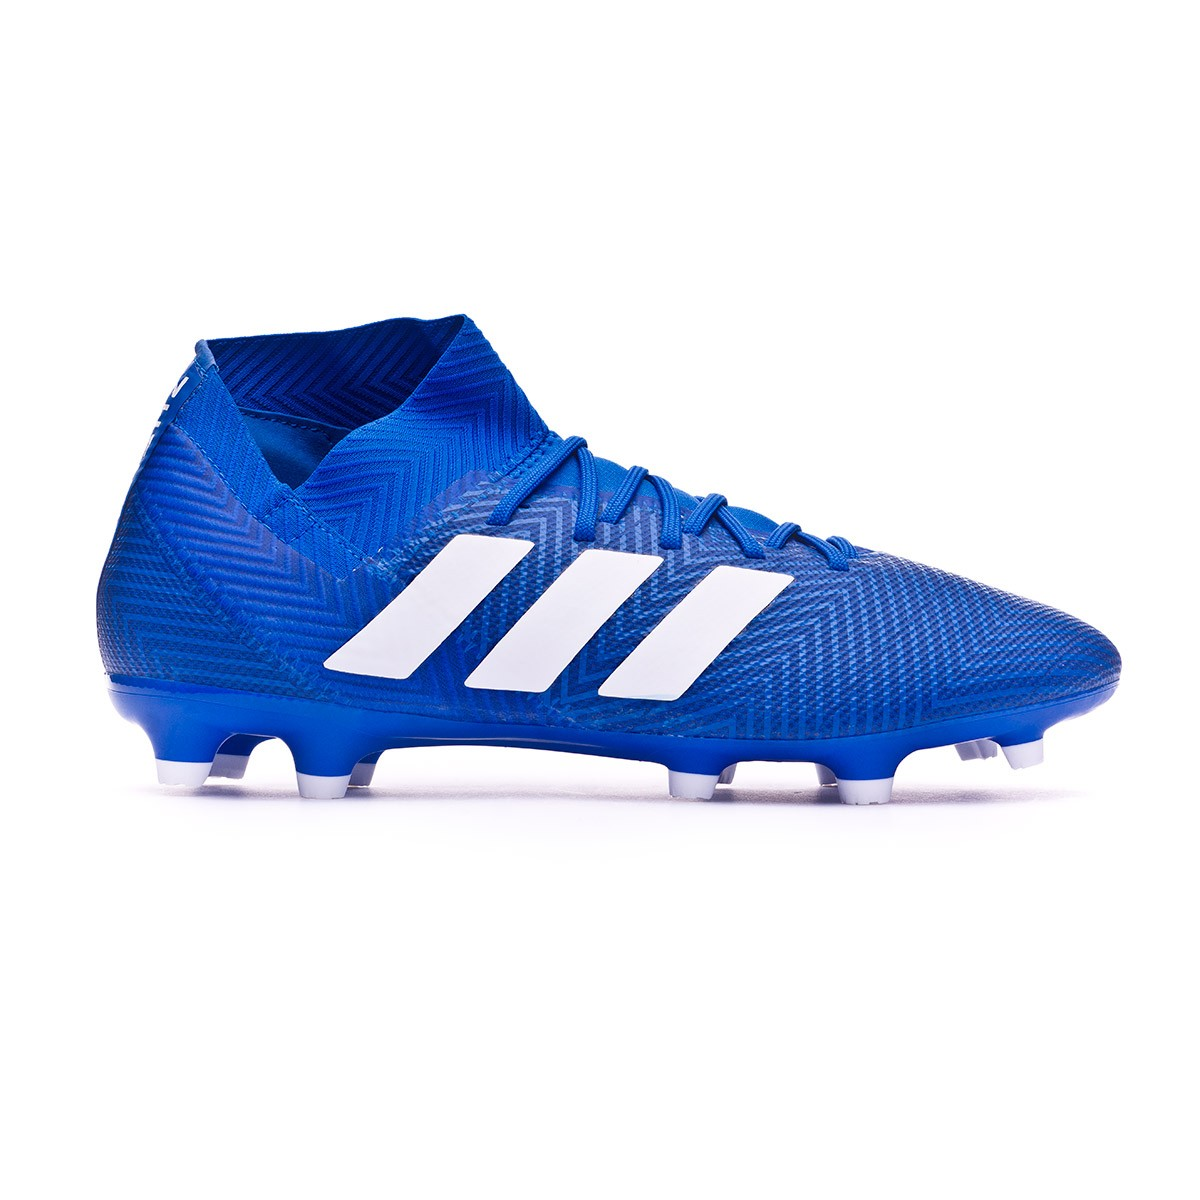 8ac4c5339 Football Boots adidas Nemeziz 18.3 FG Football blue-White-Football blue -  Football store Fútbol Emotion